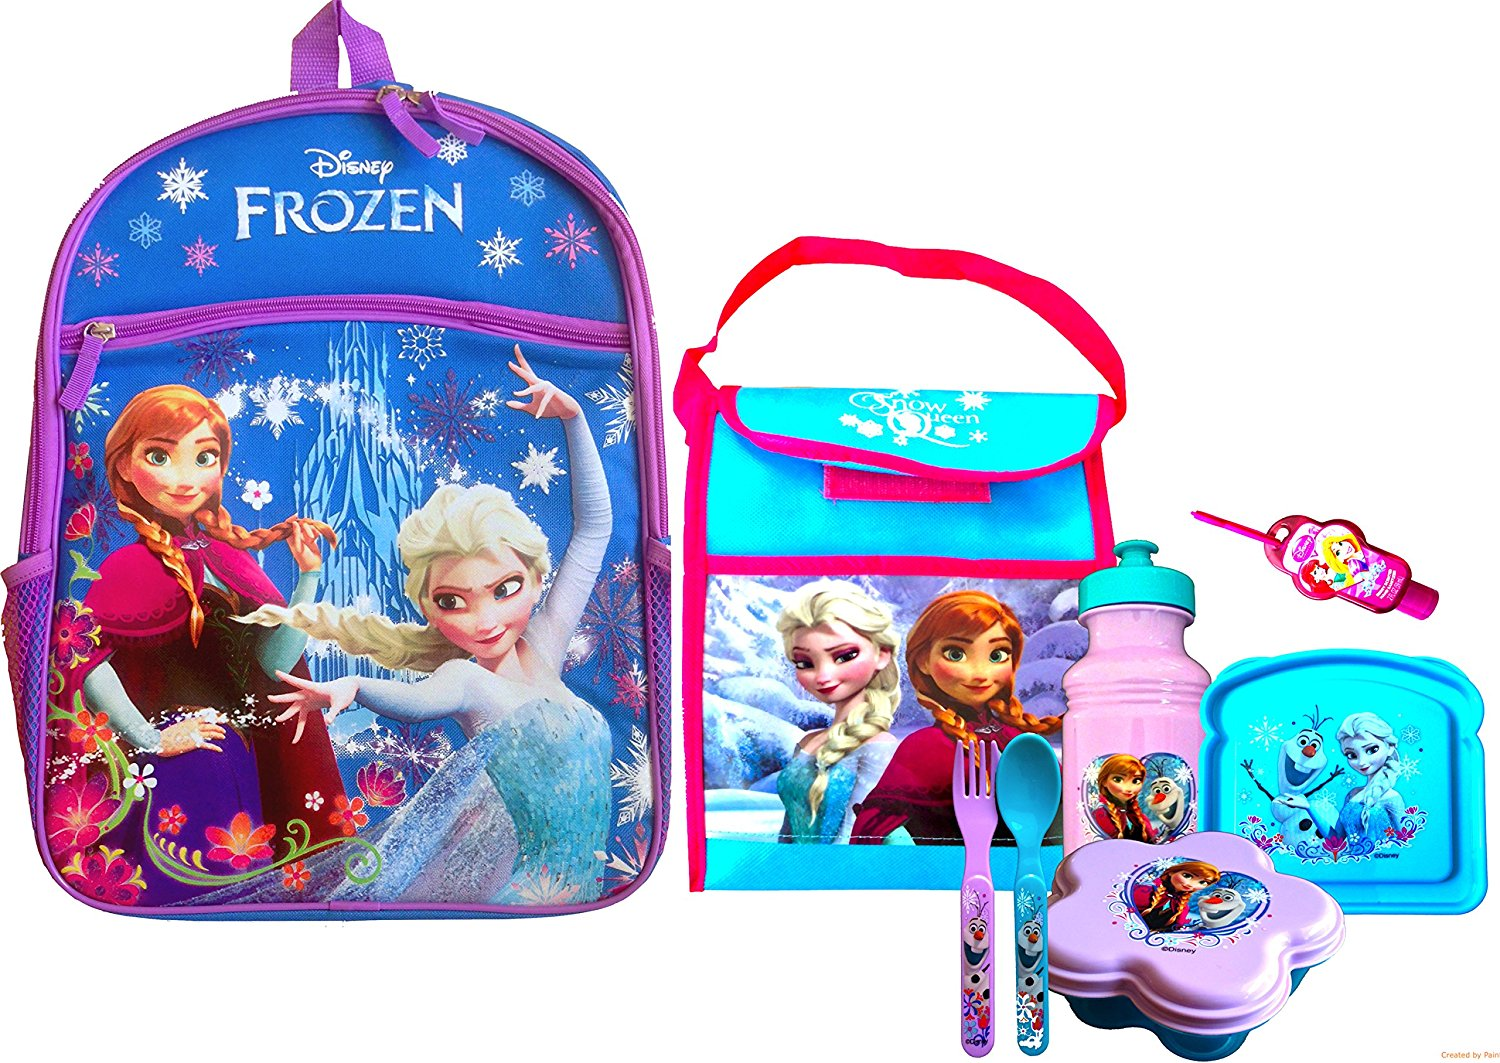 Disney Frozen Disneyland Backpack Survival Kit Variations Every Variation Inlcludes the General 3 Piece Lunch Set with Handy Clip-on Hand Sanitizer Disney Frozen Pull-top Water Bottle , Sandwich and Snack Container (BLUE PACK WITH NON WOVEN VERTICAL BAG)